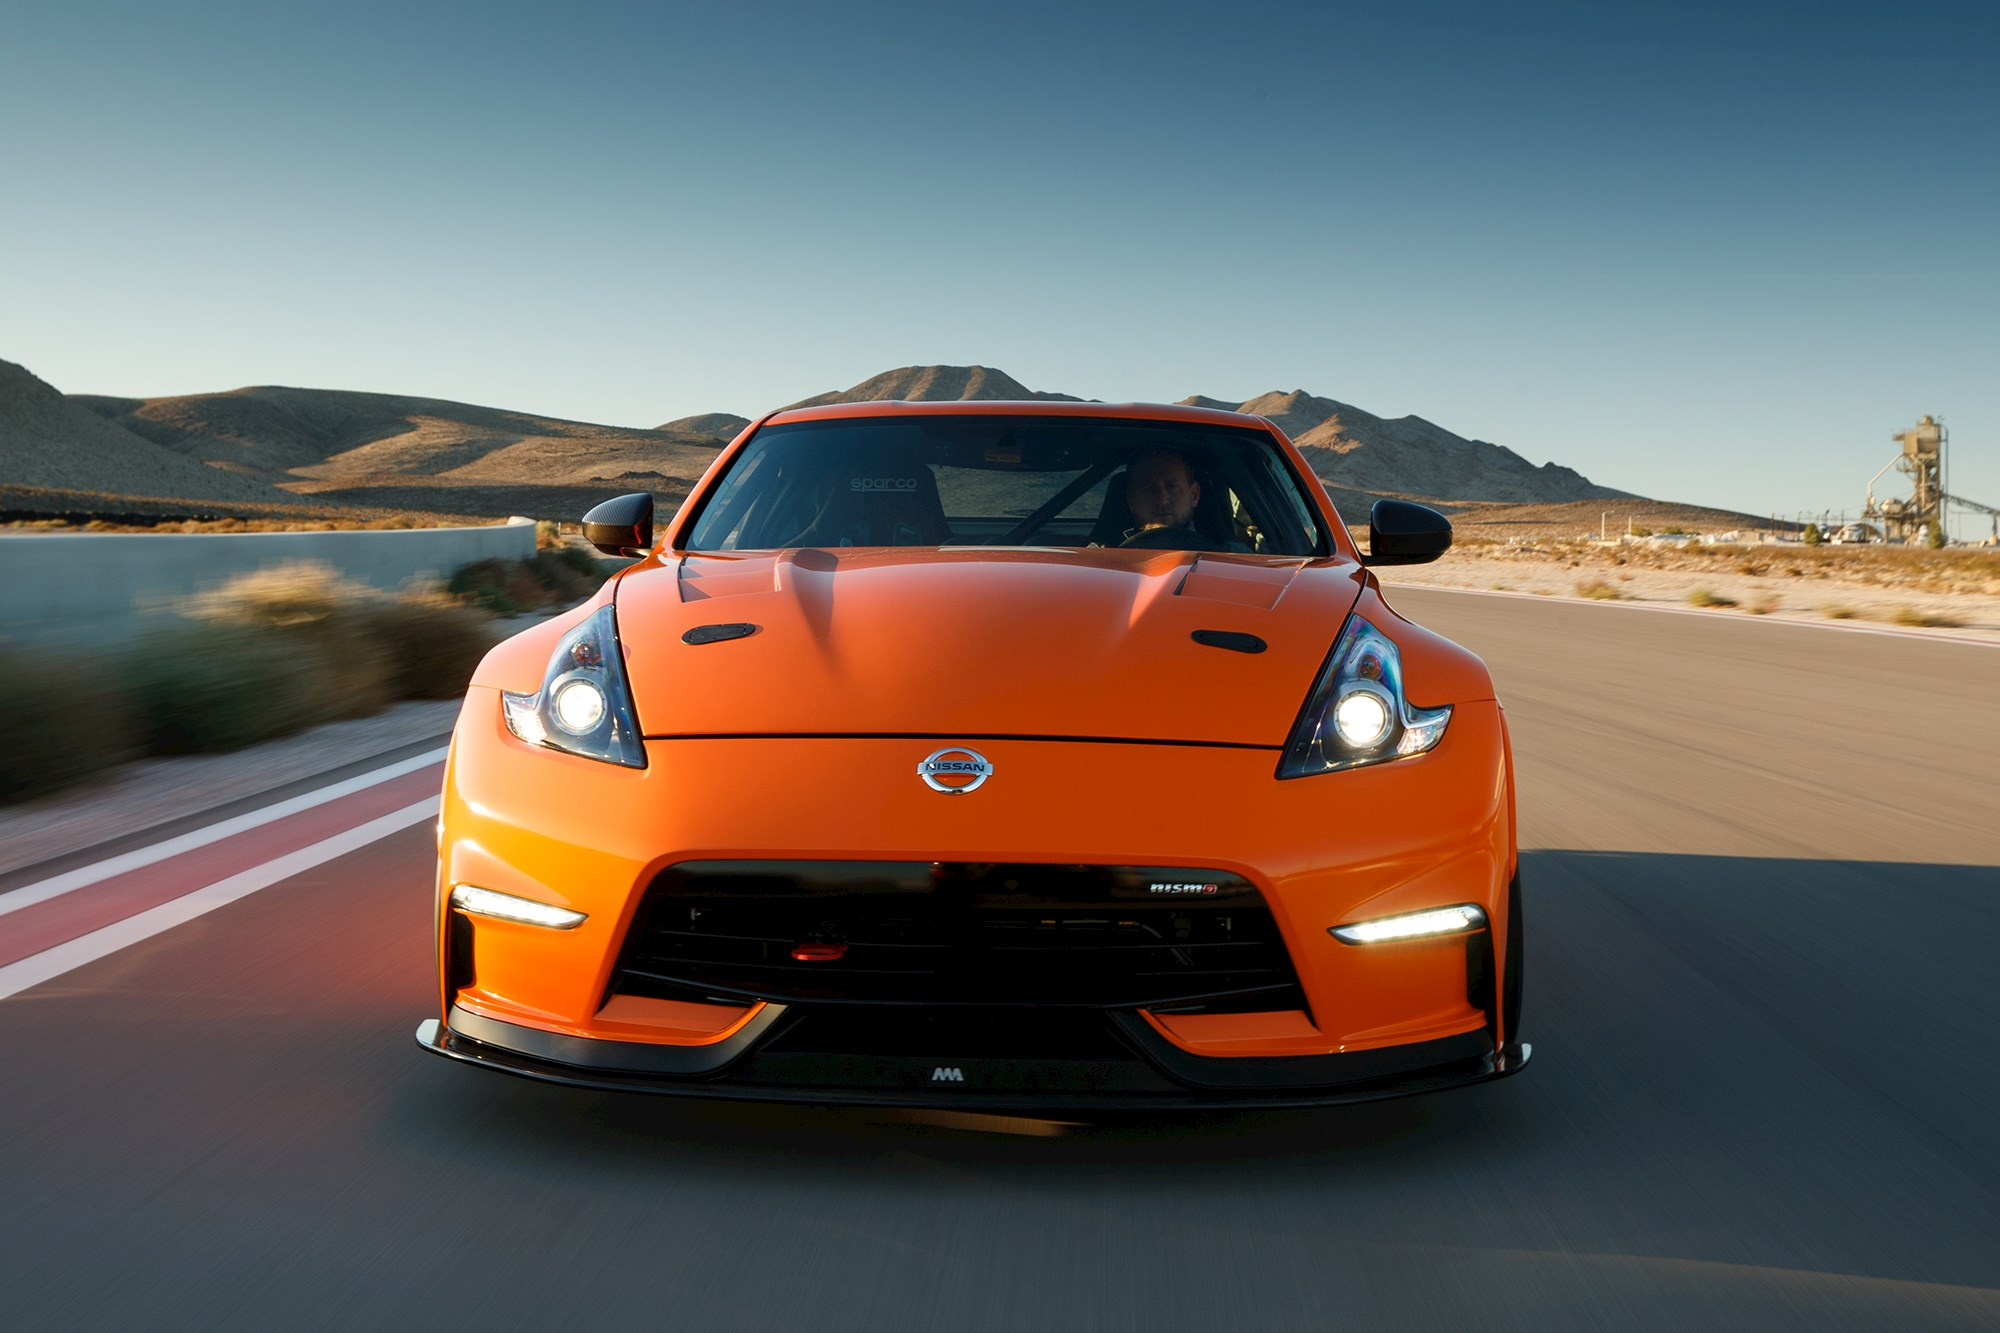 Modified Nissan 370Z Nismo concept 'may appear' in